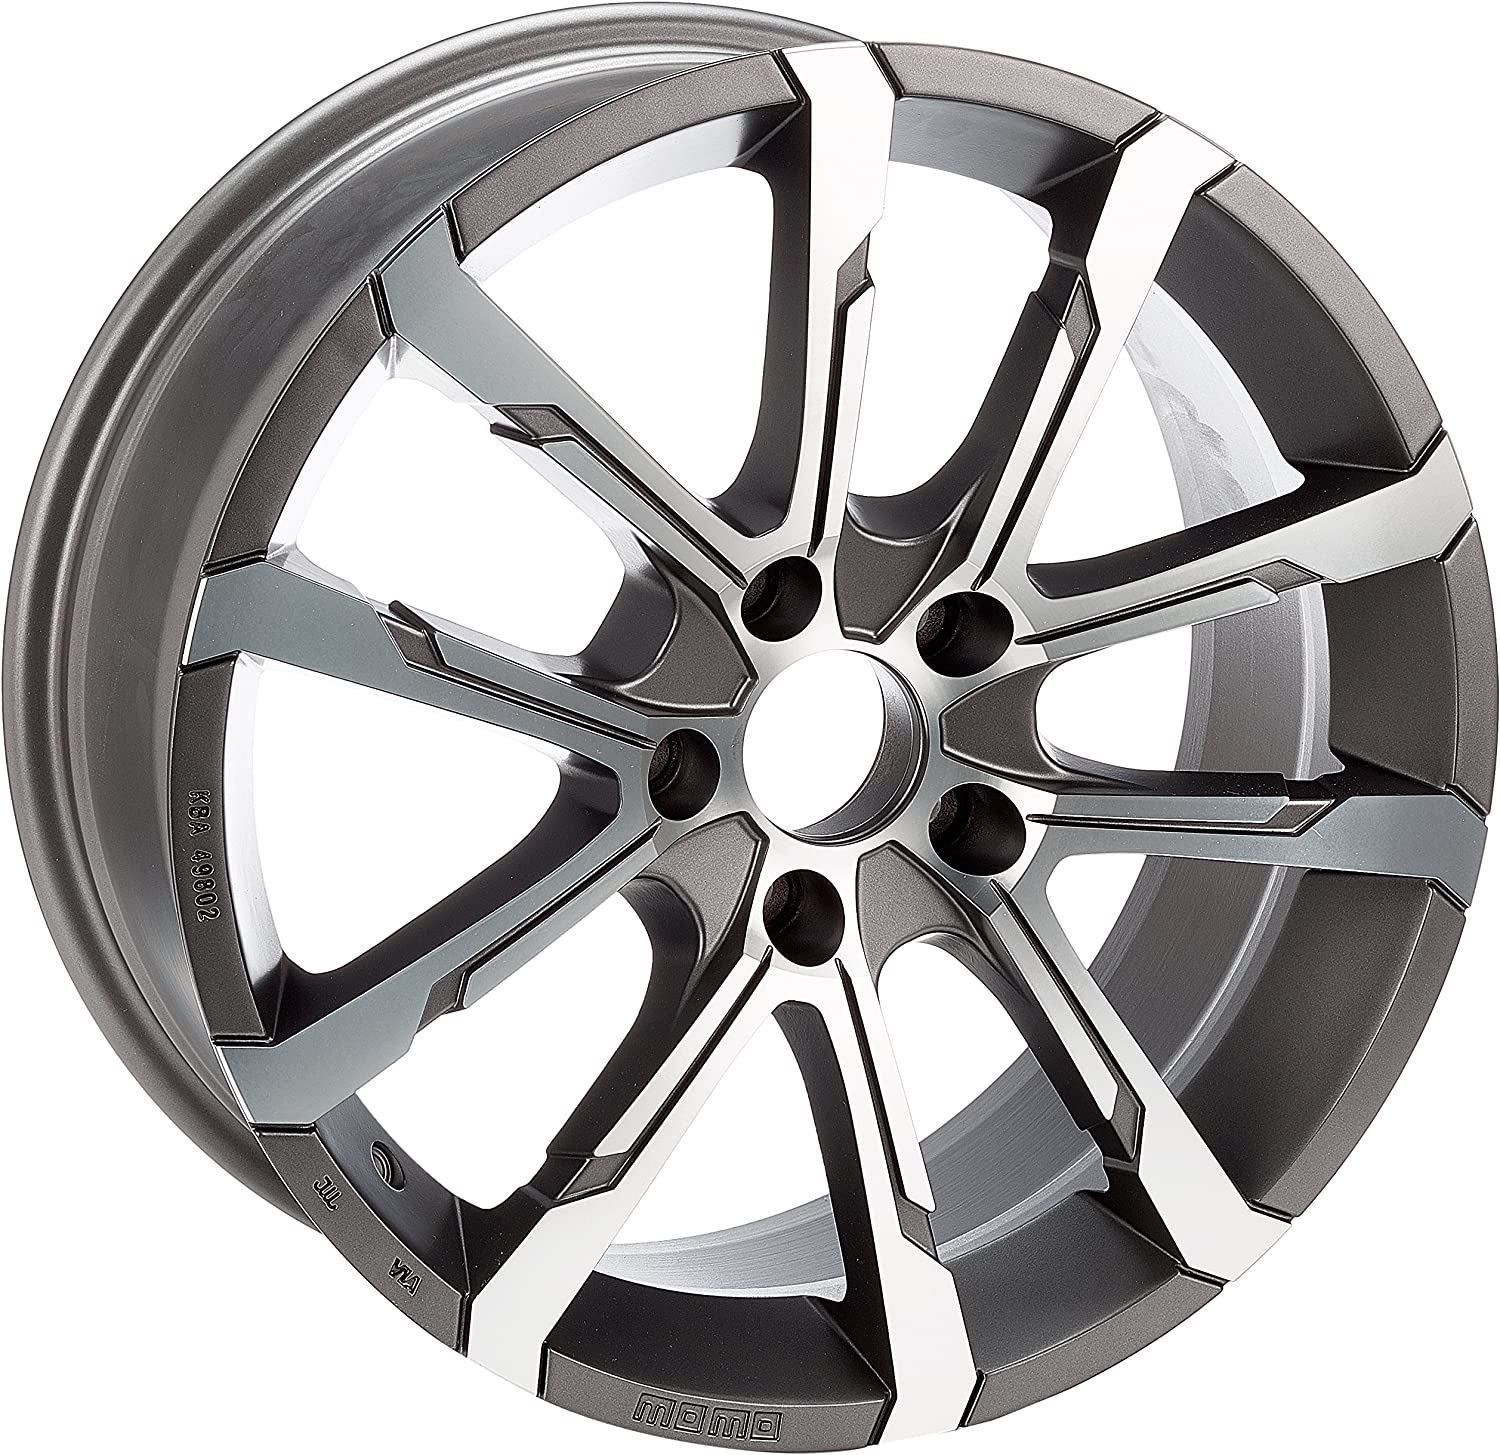 Now on sale MOMO WHEA75735500L - 7.5X17 ET35 5X100 Rims Free shipping / New Alloy Car